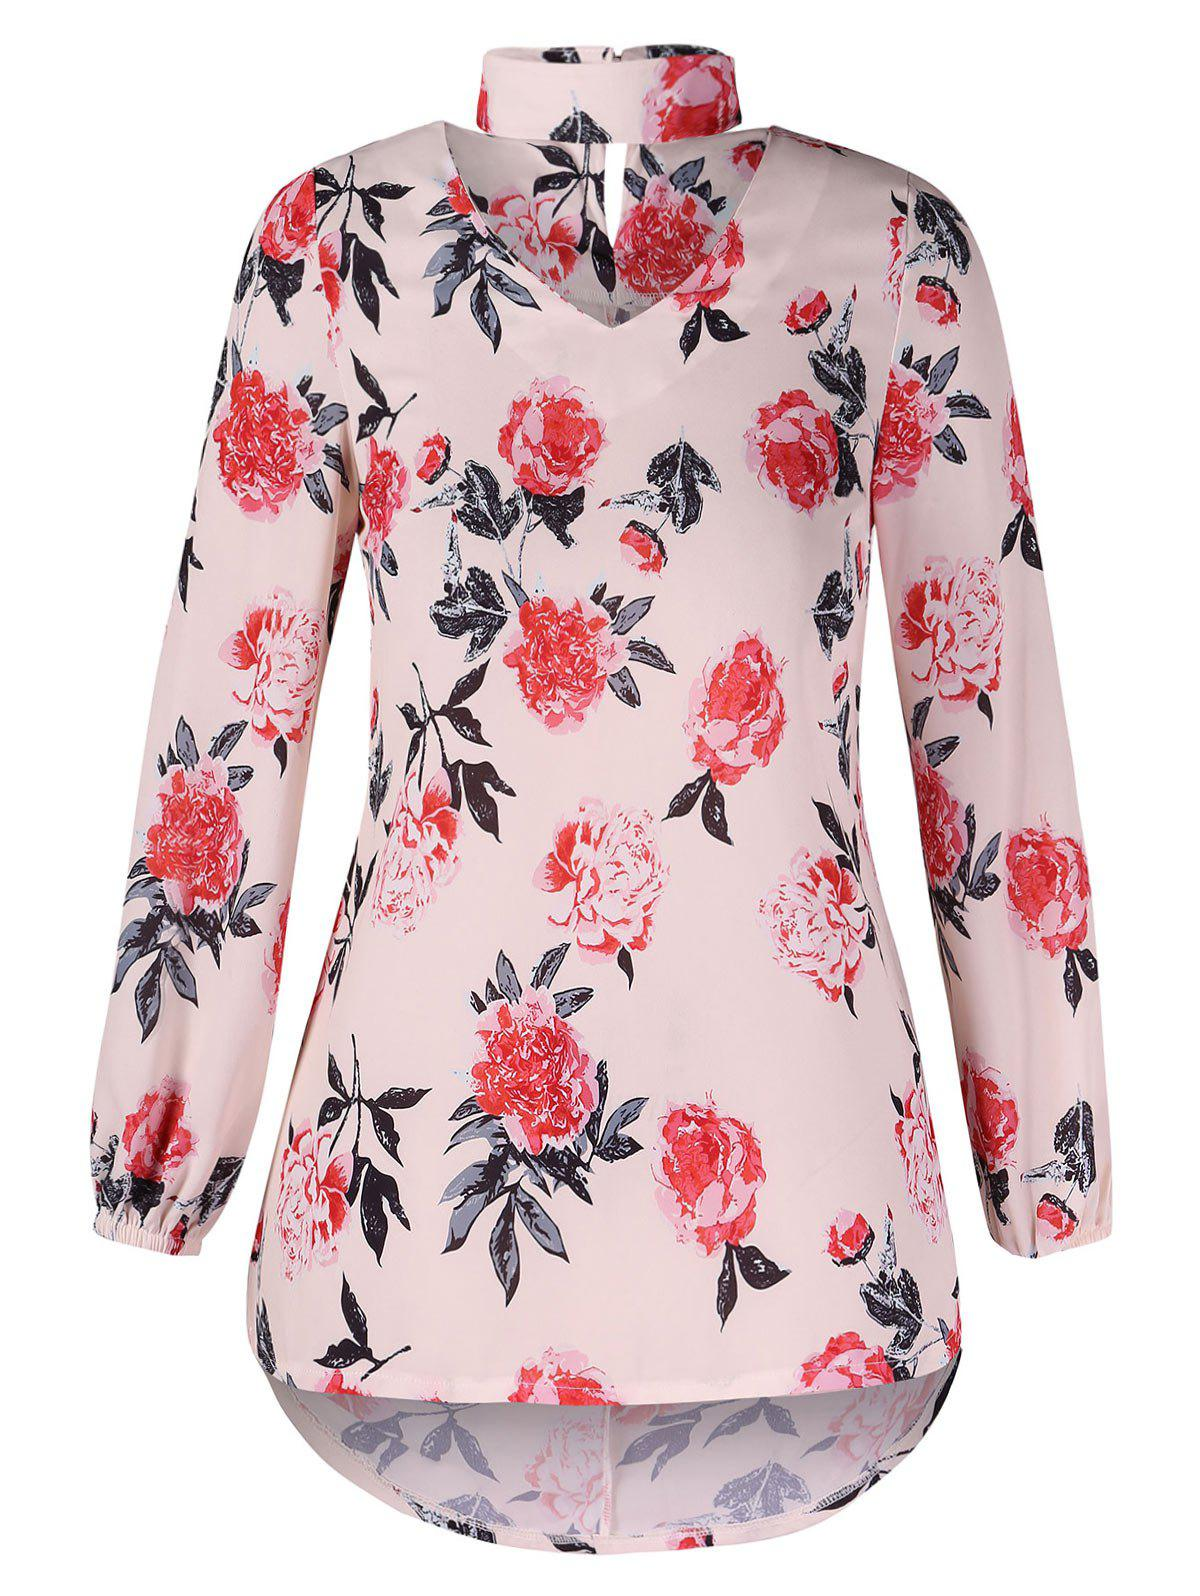 New Cut Out Floral Print Blouse